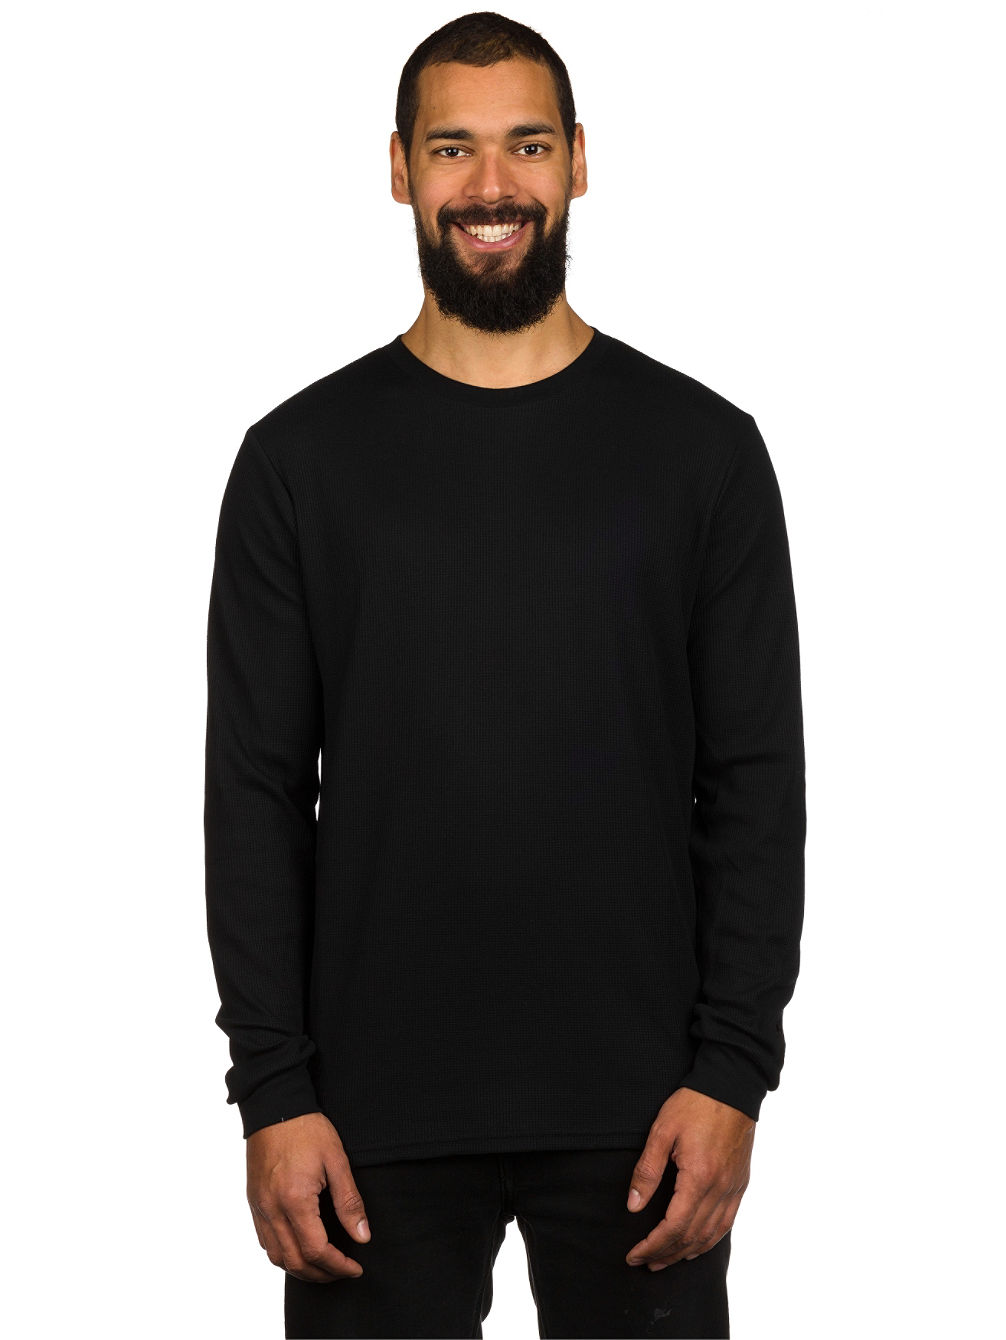 993b8a23 Buy Nike SB Thermo Long Sleeve T-Shirt online at Blue Tomato